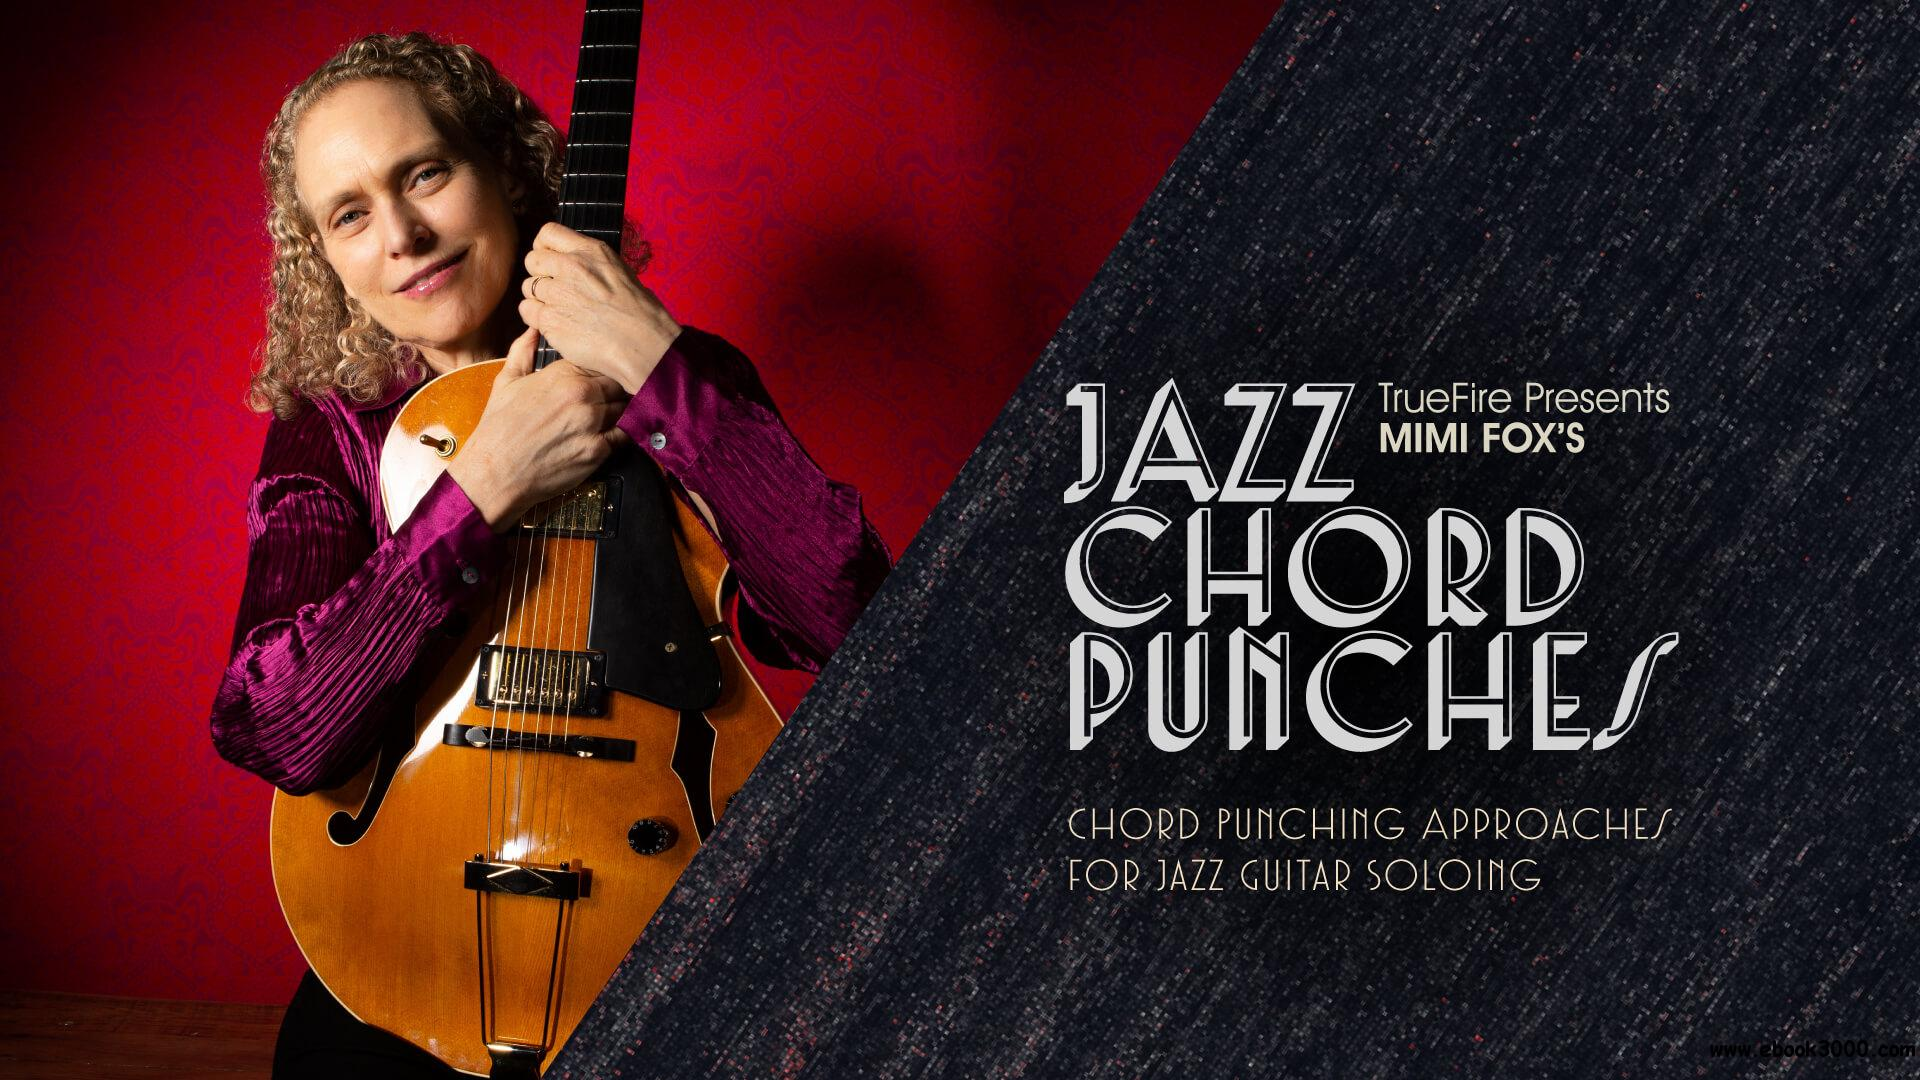 Mimi Fox's Jazz Chord Punches